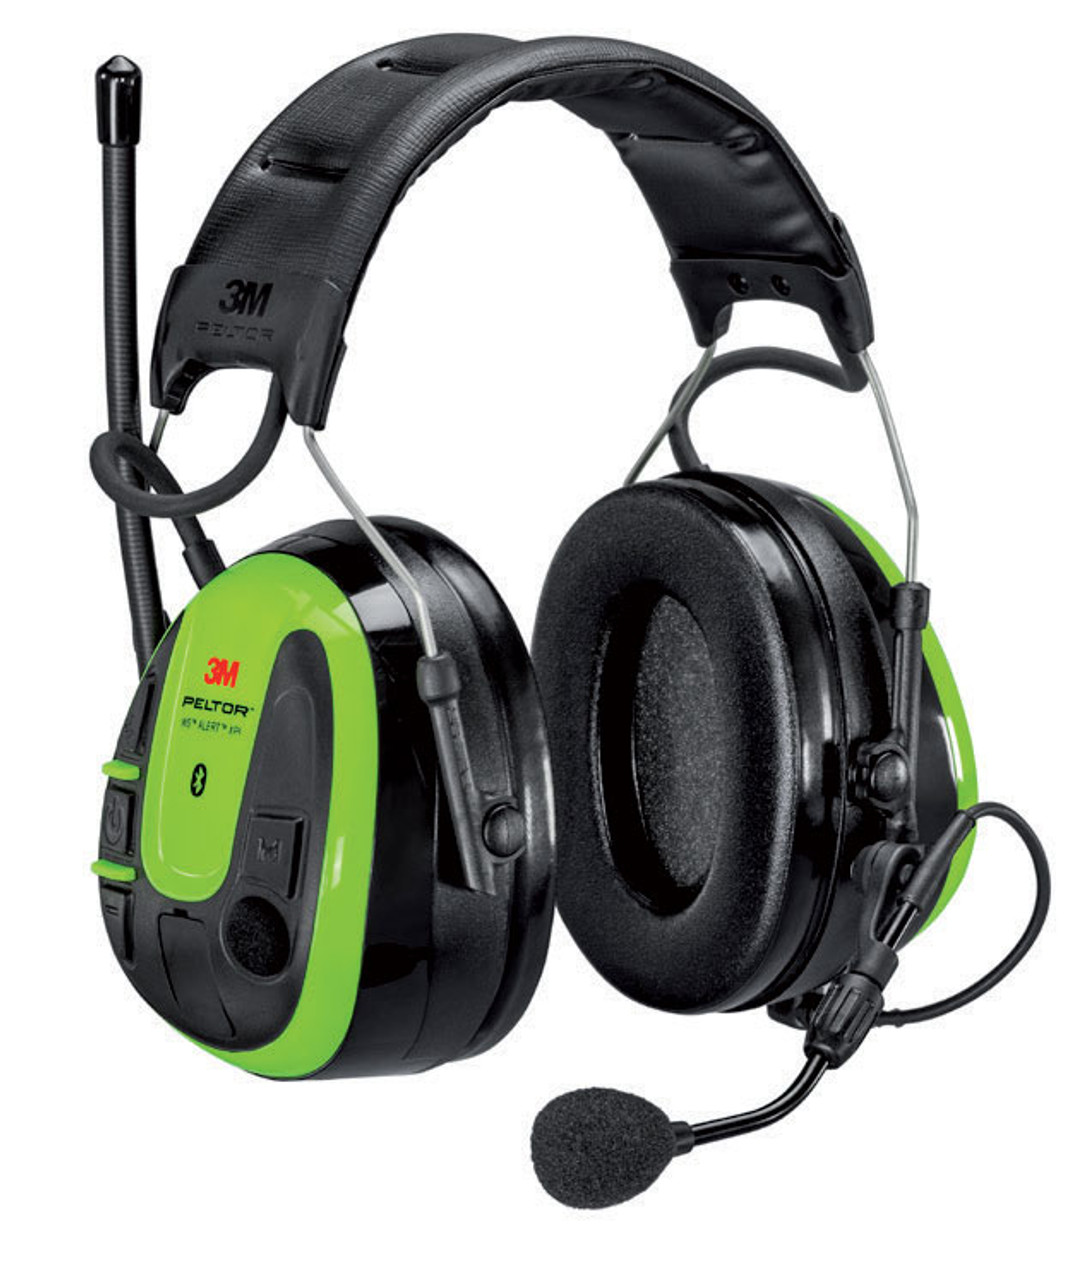 3m Peltor Ws Alert Xpi Headset Hearing Protection W Bluetooth Multipoint Technology